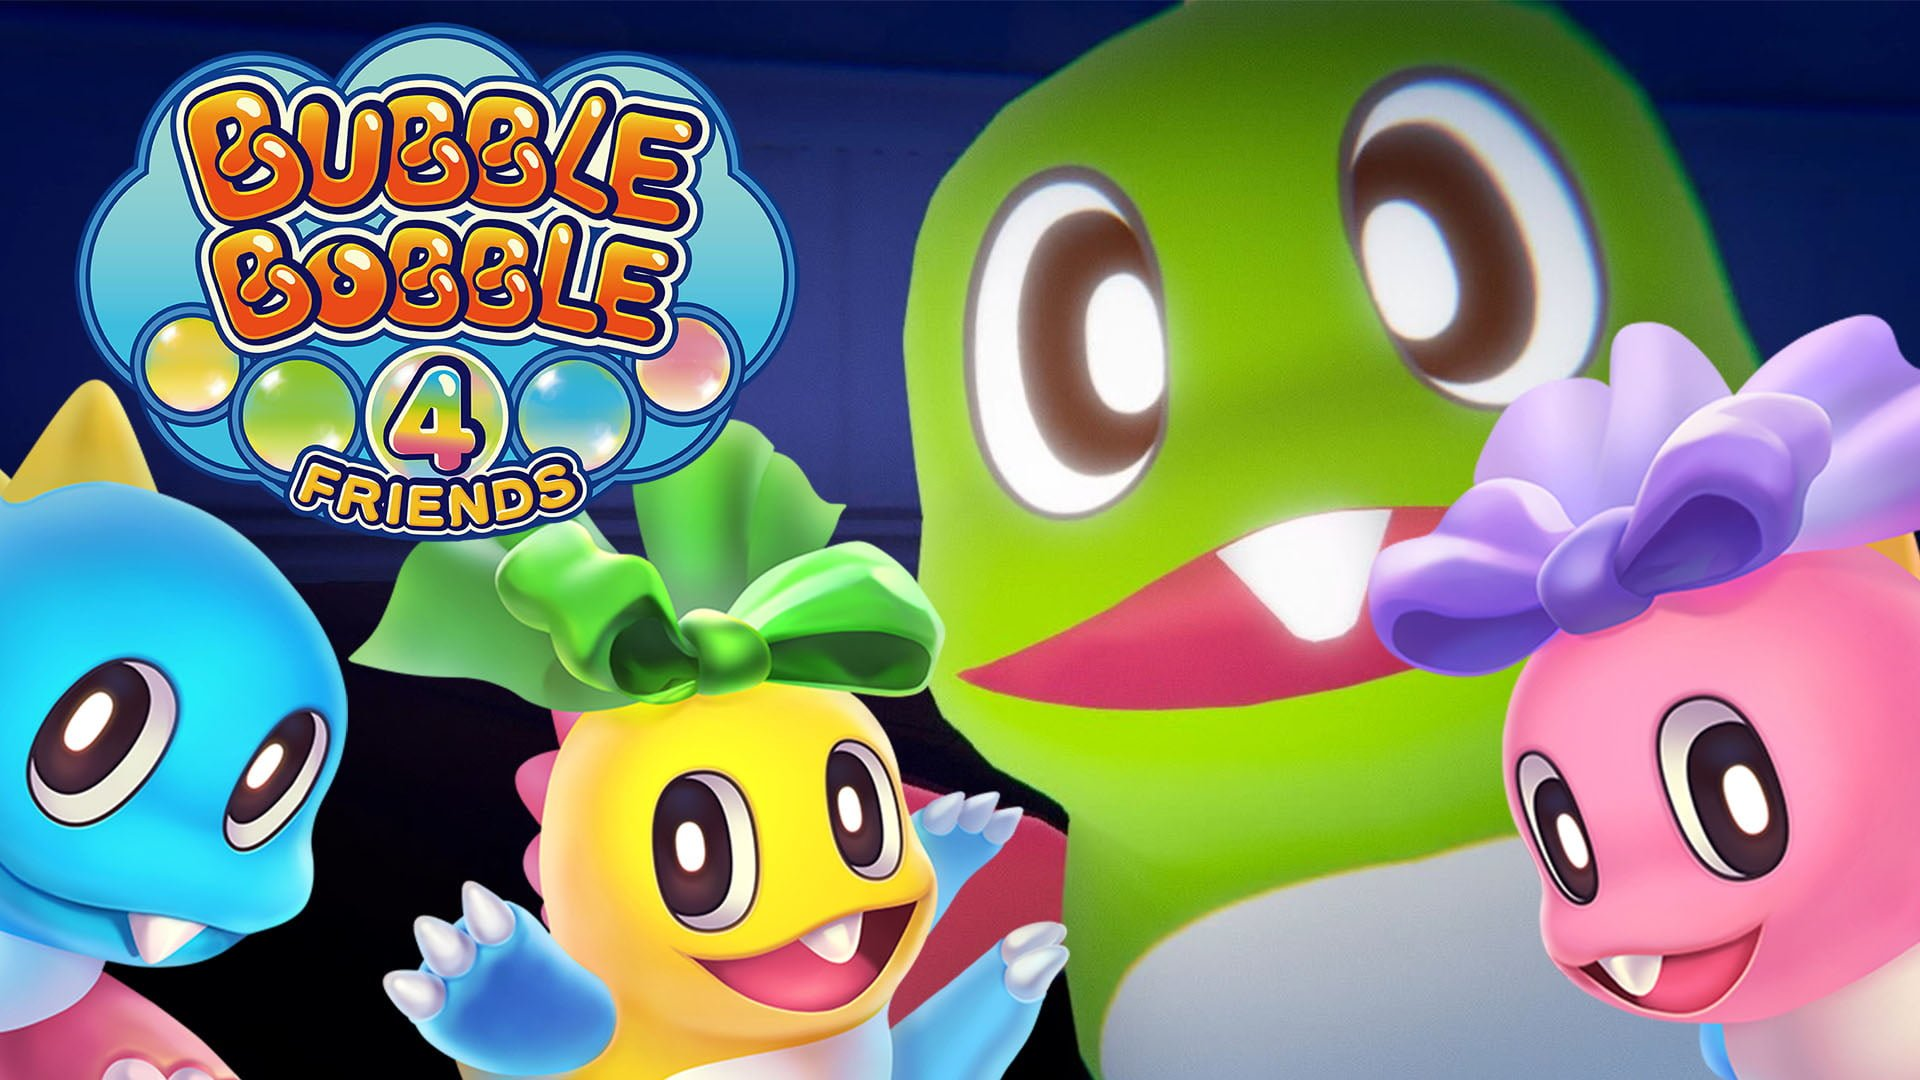 Bubble Bobble 4 Friends (Switch) Review